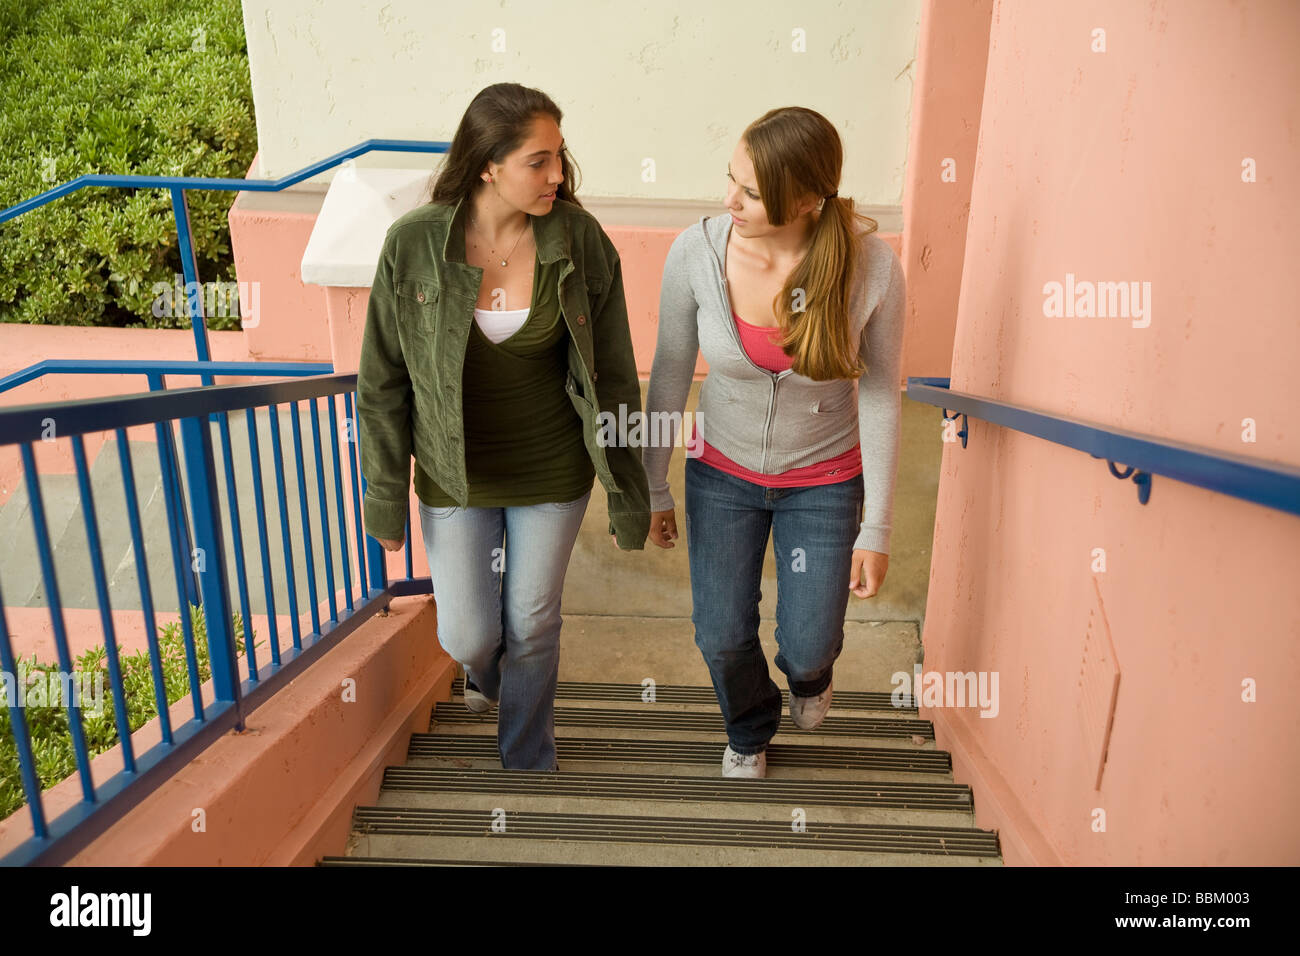 young person people 15 16 17 year old Hang hanging out two Racially mixed mix Ethnic diversity teen girls take stairs - Stock Image